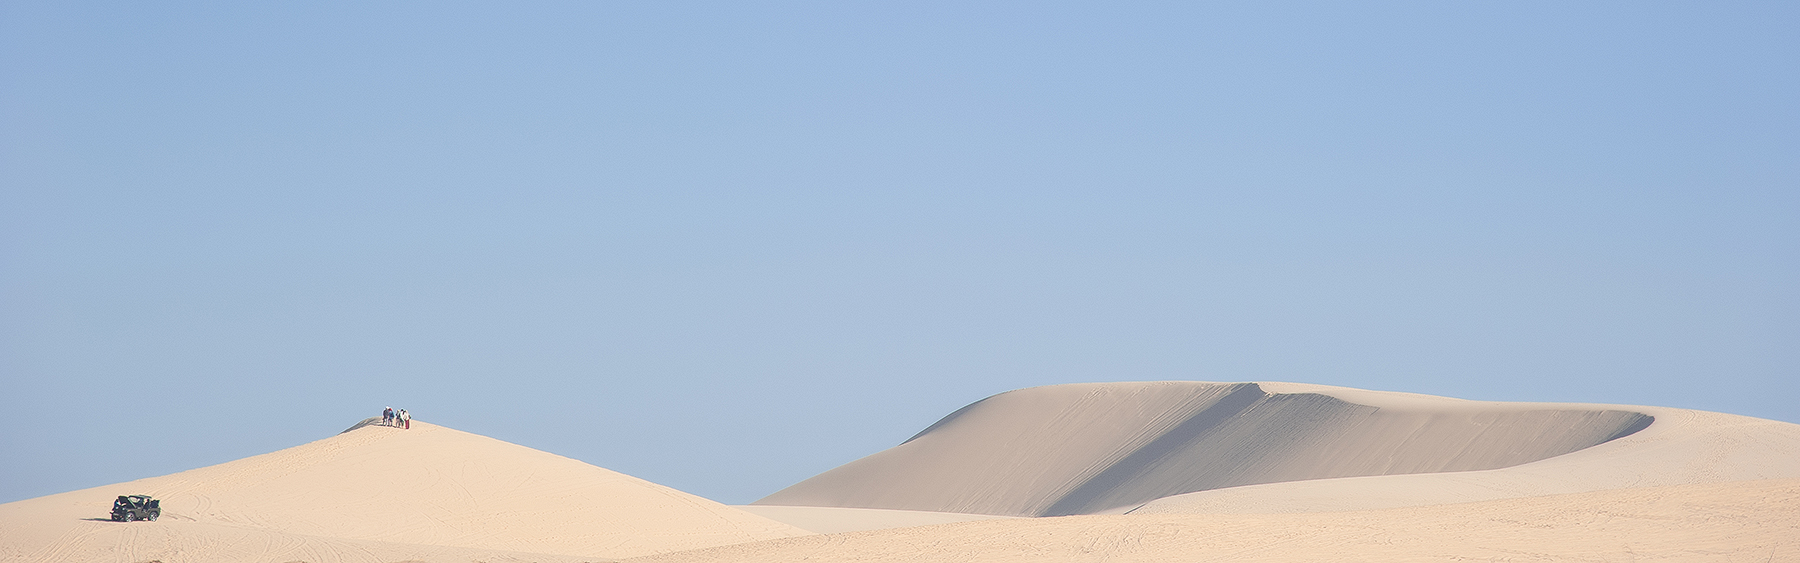 Minimalist view of Sand Dunes